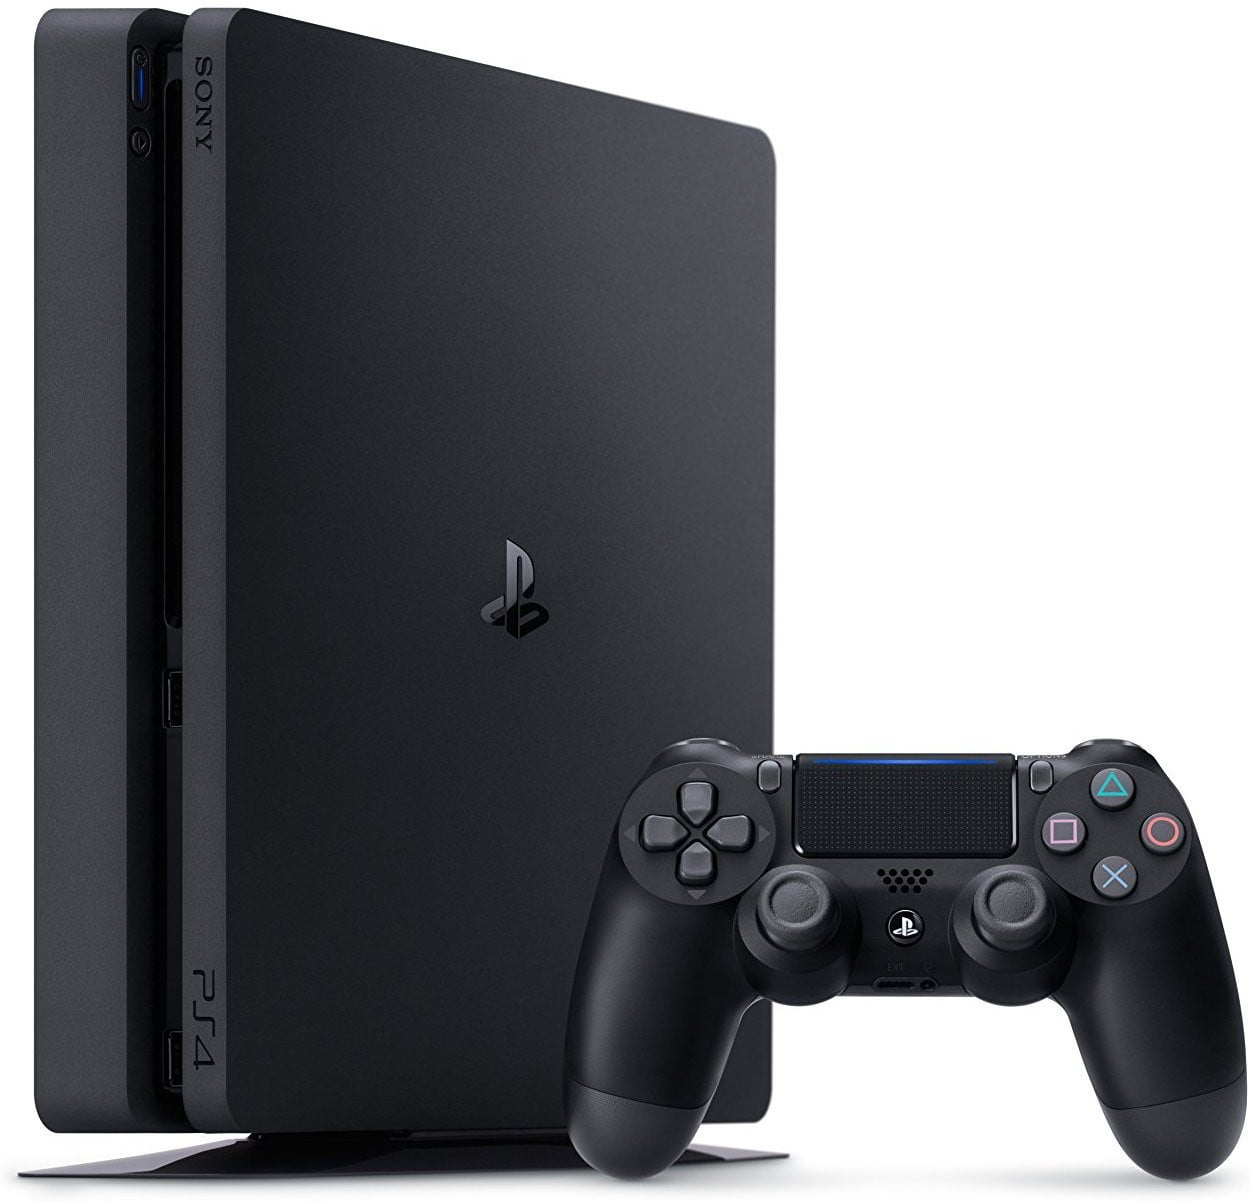 Buy PlayStation 4 (PS4) Slim 500G Black a PS4 Console from ShamyStores